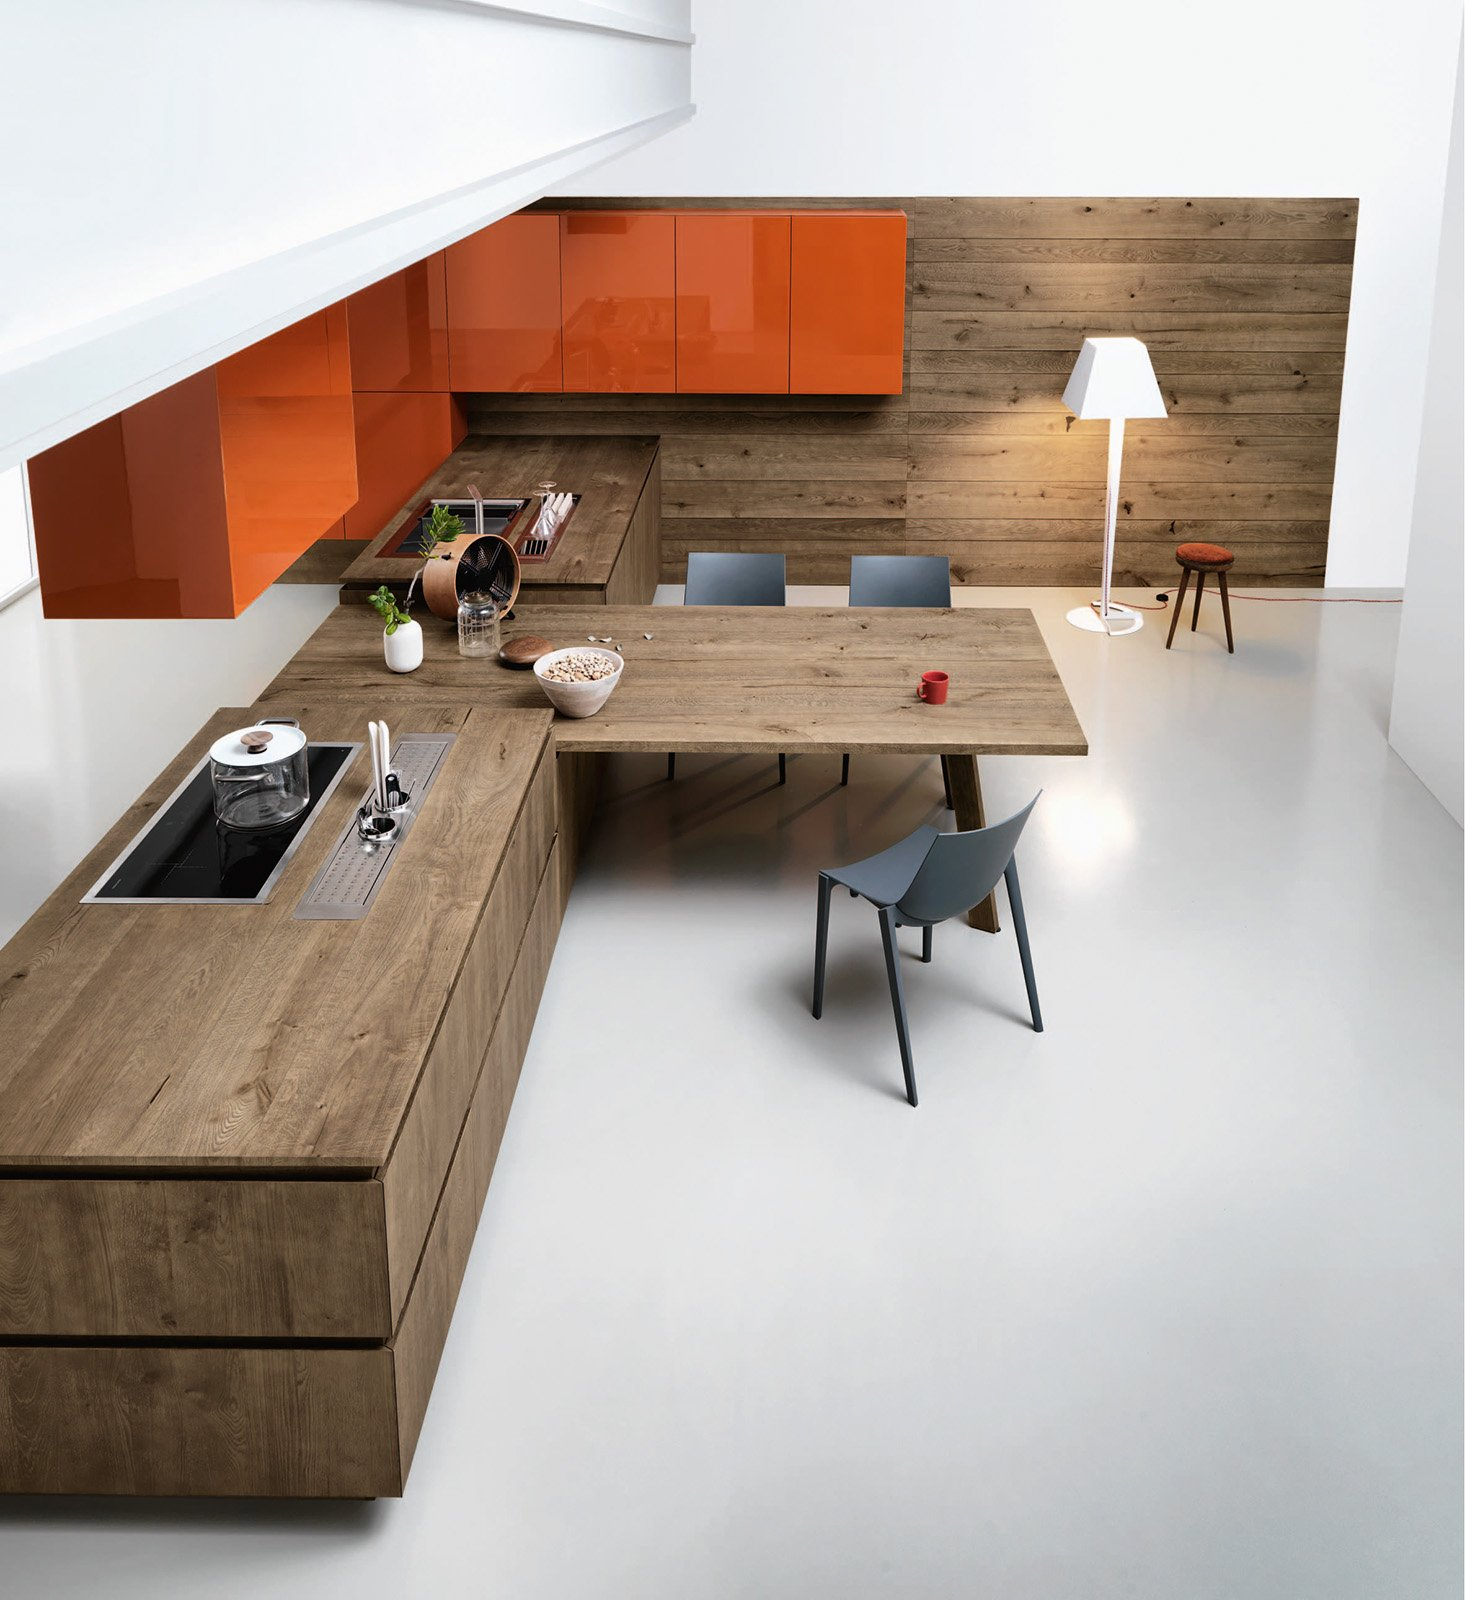 Beautiful Cucine Gatto Prezzi Pictures - Skilifts.us - skilifts.us